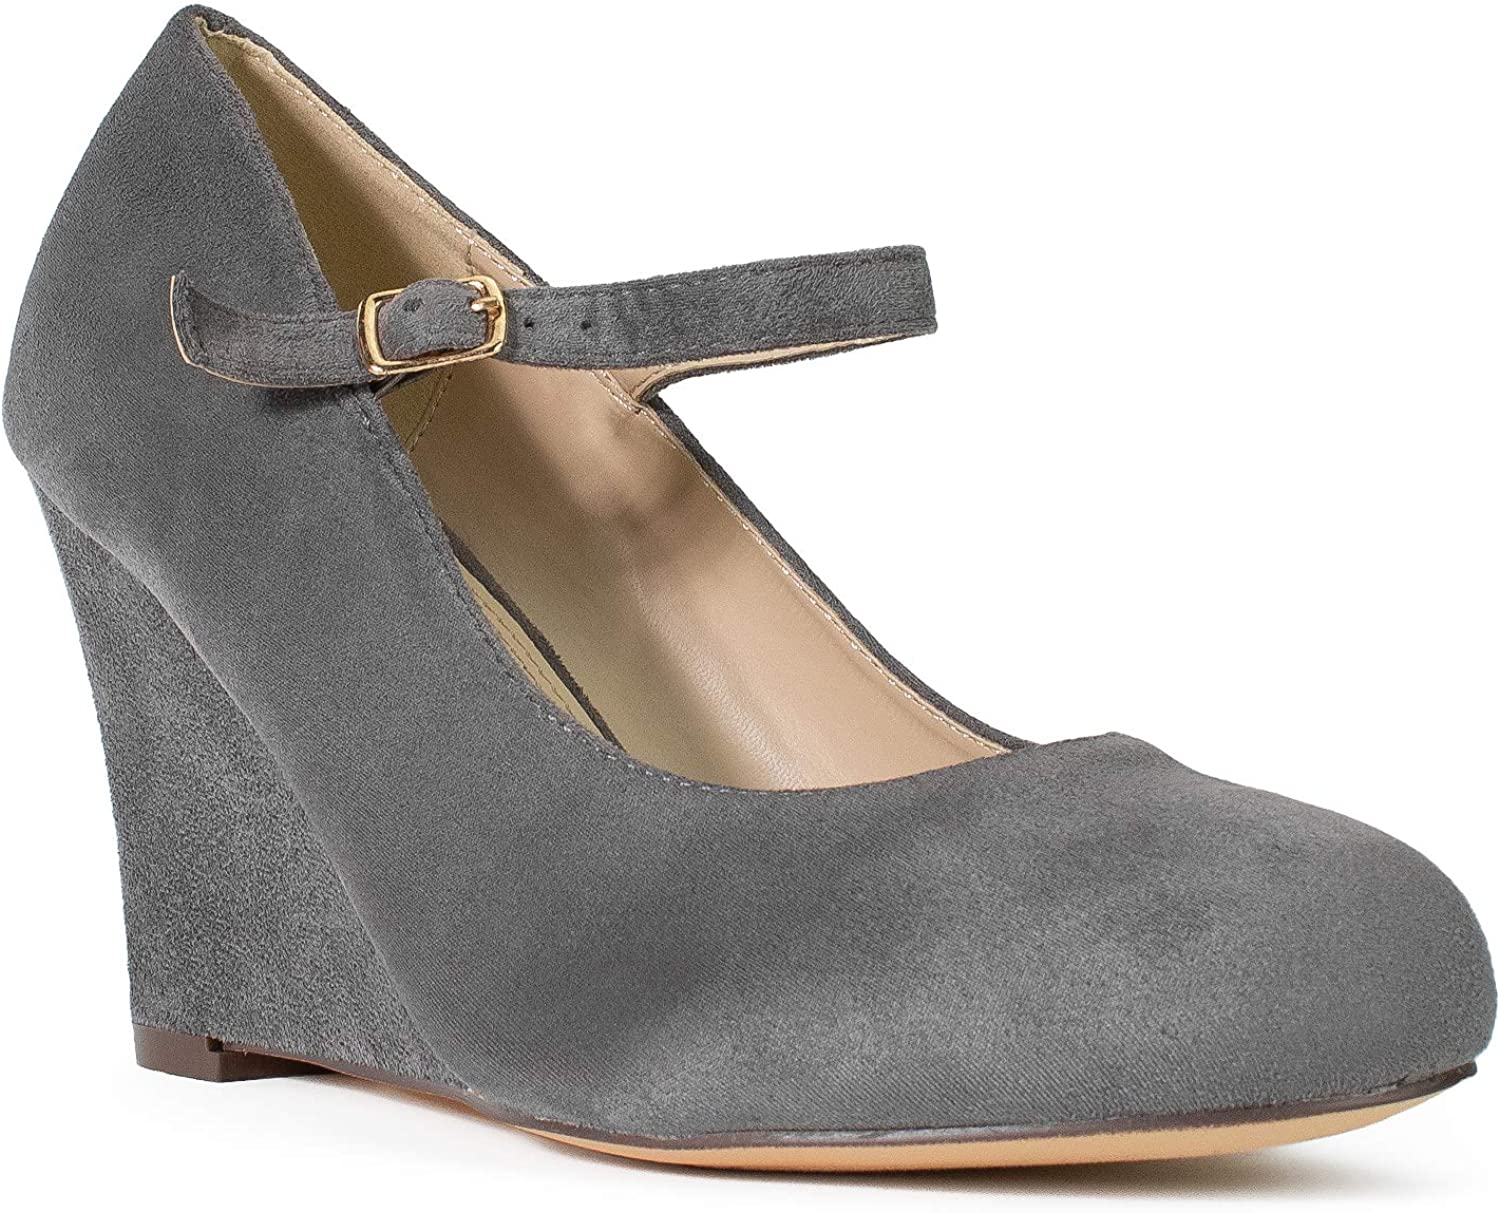 RF ROOM OF FASHION Women's Wide Fit Mary Jane Extra Cushion Wedge Pumps (True Wide Width)